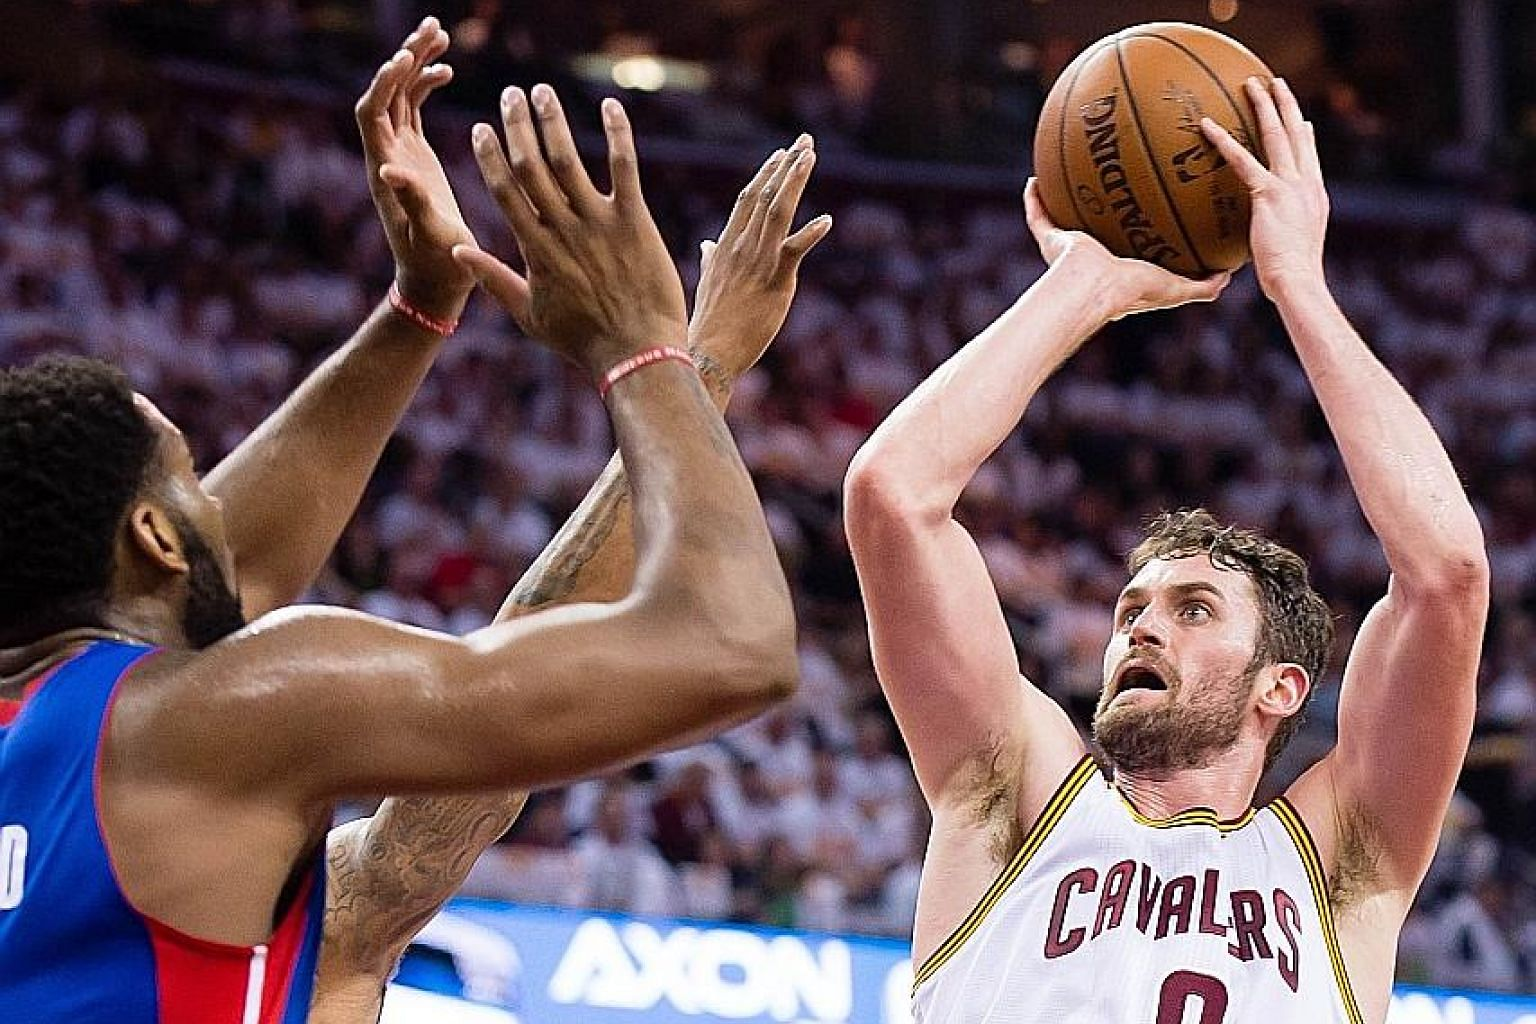 Cleveland's Kevin Love trying to shoot over Detroit players during the second half of Game 1 of the Eastern Conference first-round series at Quicken Loans Arena. The Cavaliers defeated the Pistons 106-101.